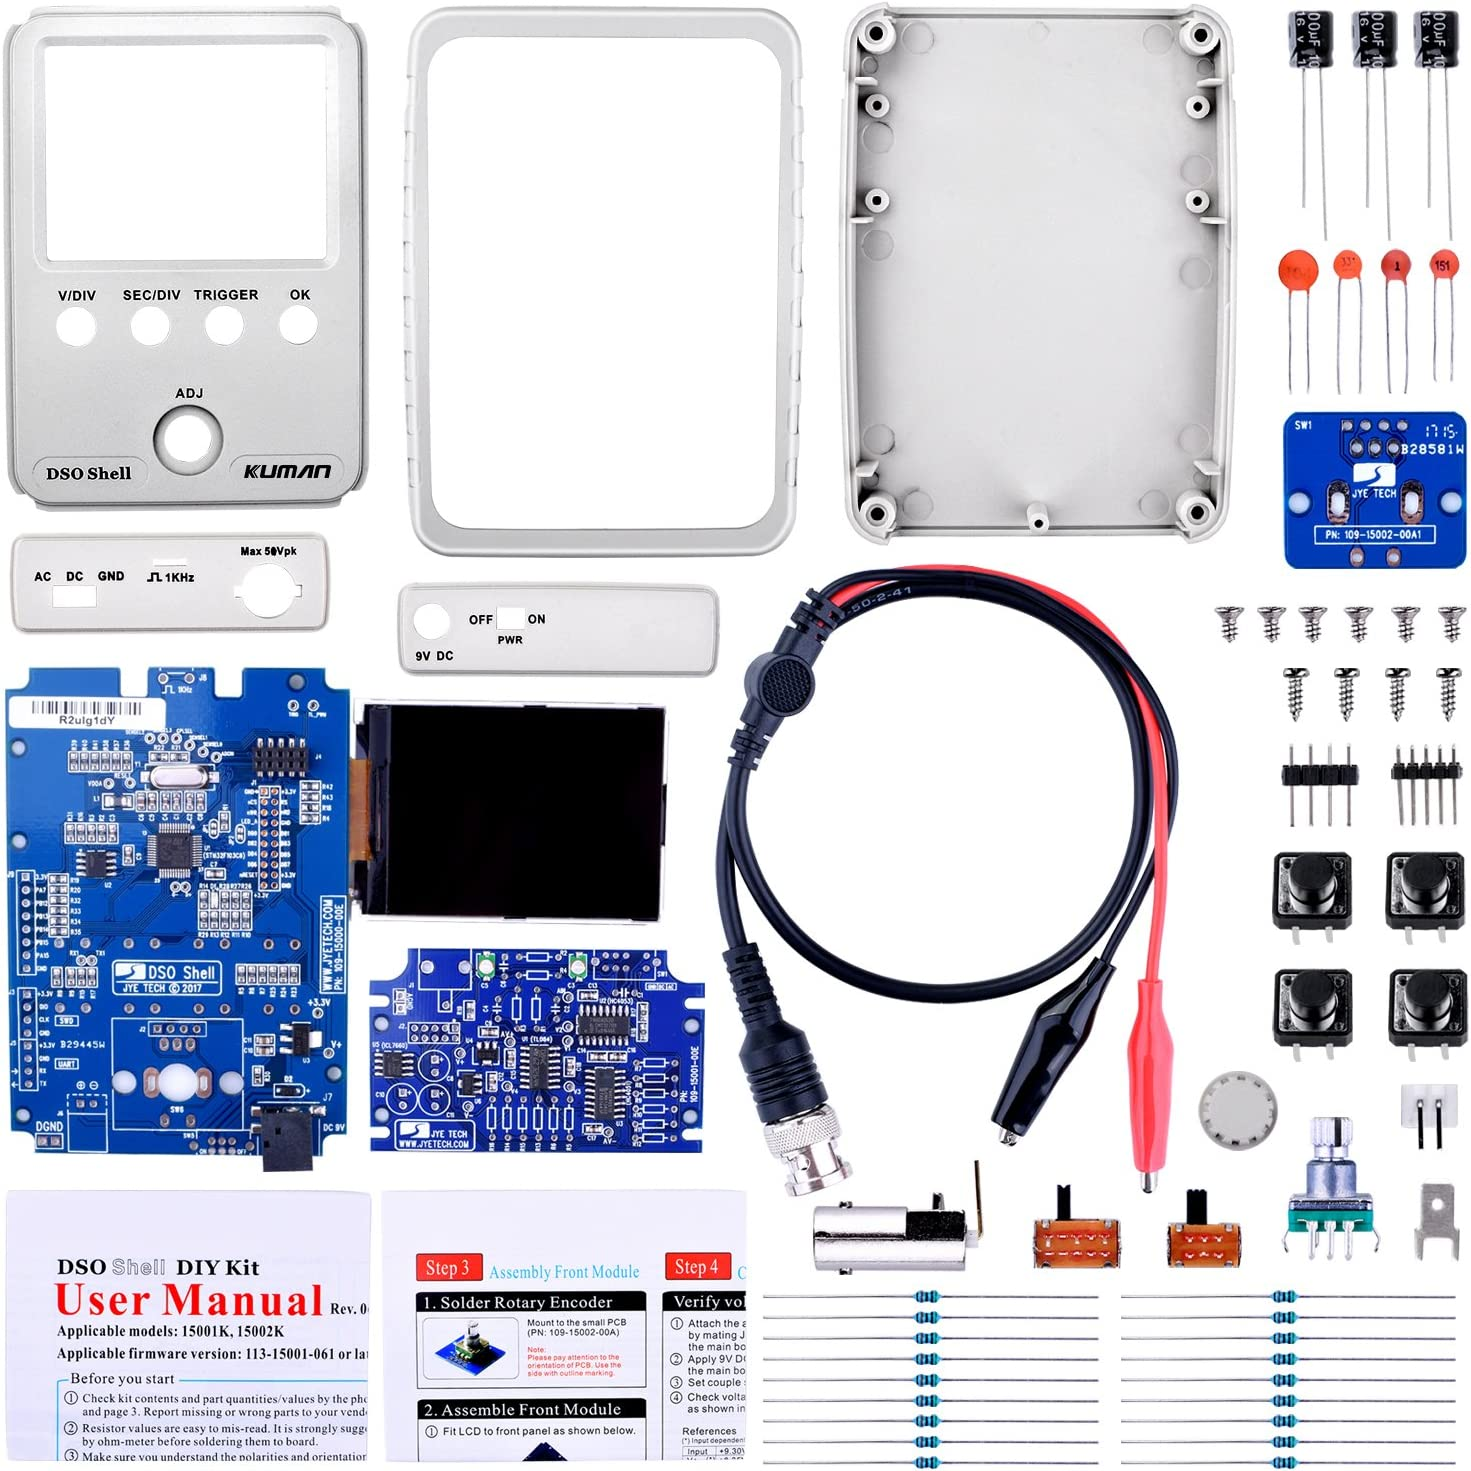 Probe 15001K DIY Parts SMD pre-soldered Kuman JYE Tech DSO Shell Oscilloscope DIY Kit with Open Source 2.4 inch Color TFT LCD+ Shell